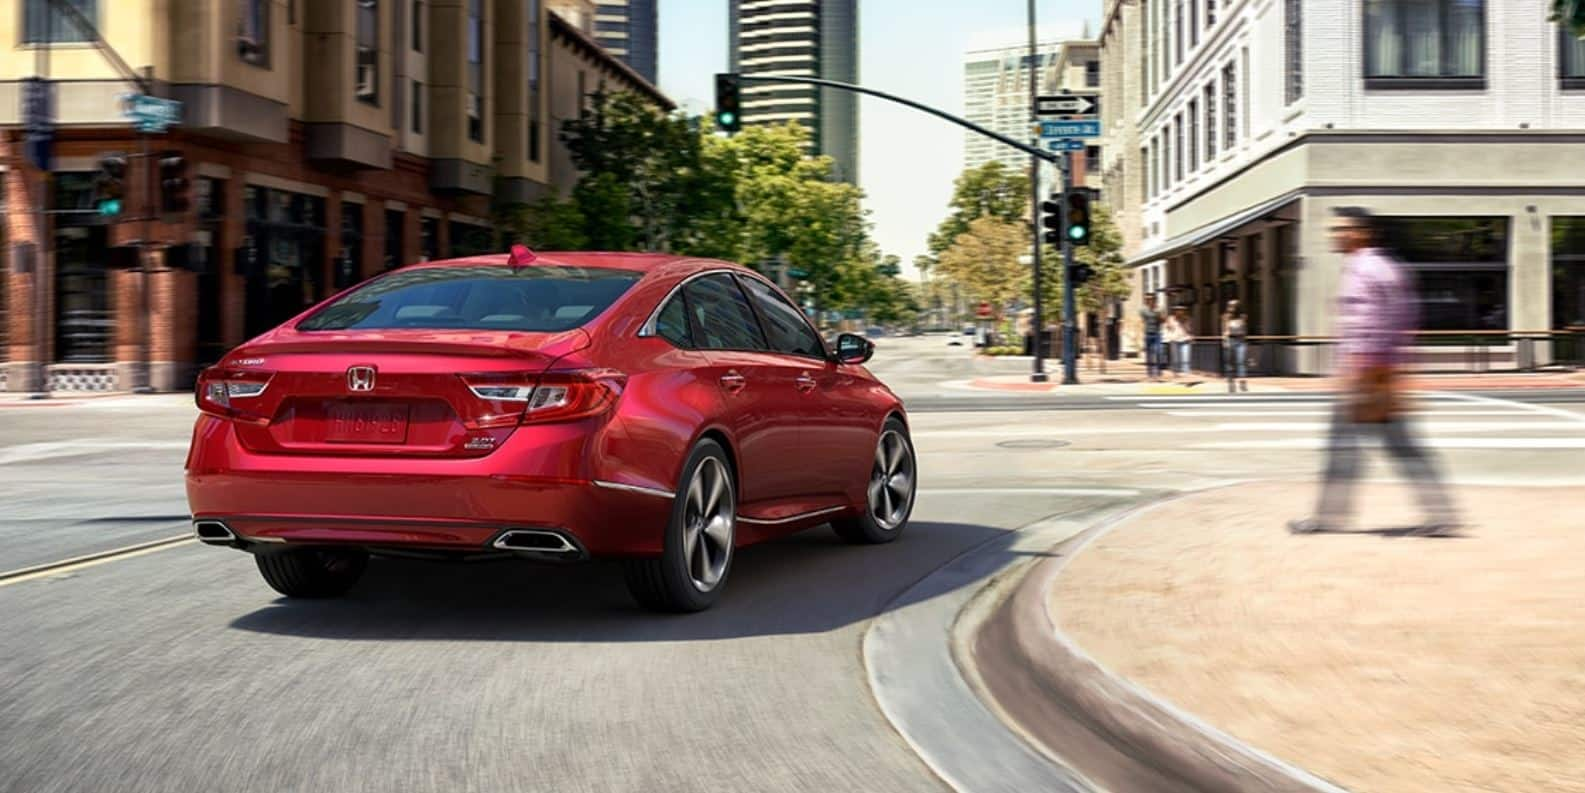 Why Choose 2020 Honda Accord Over the 2020 Toyota Camry